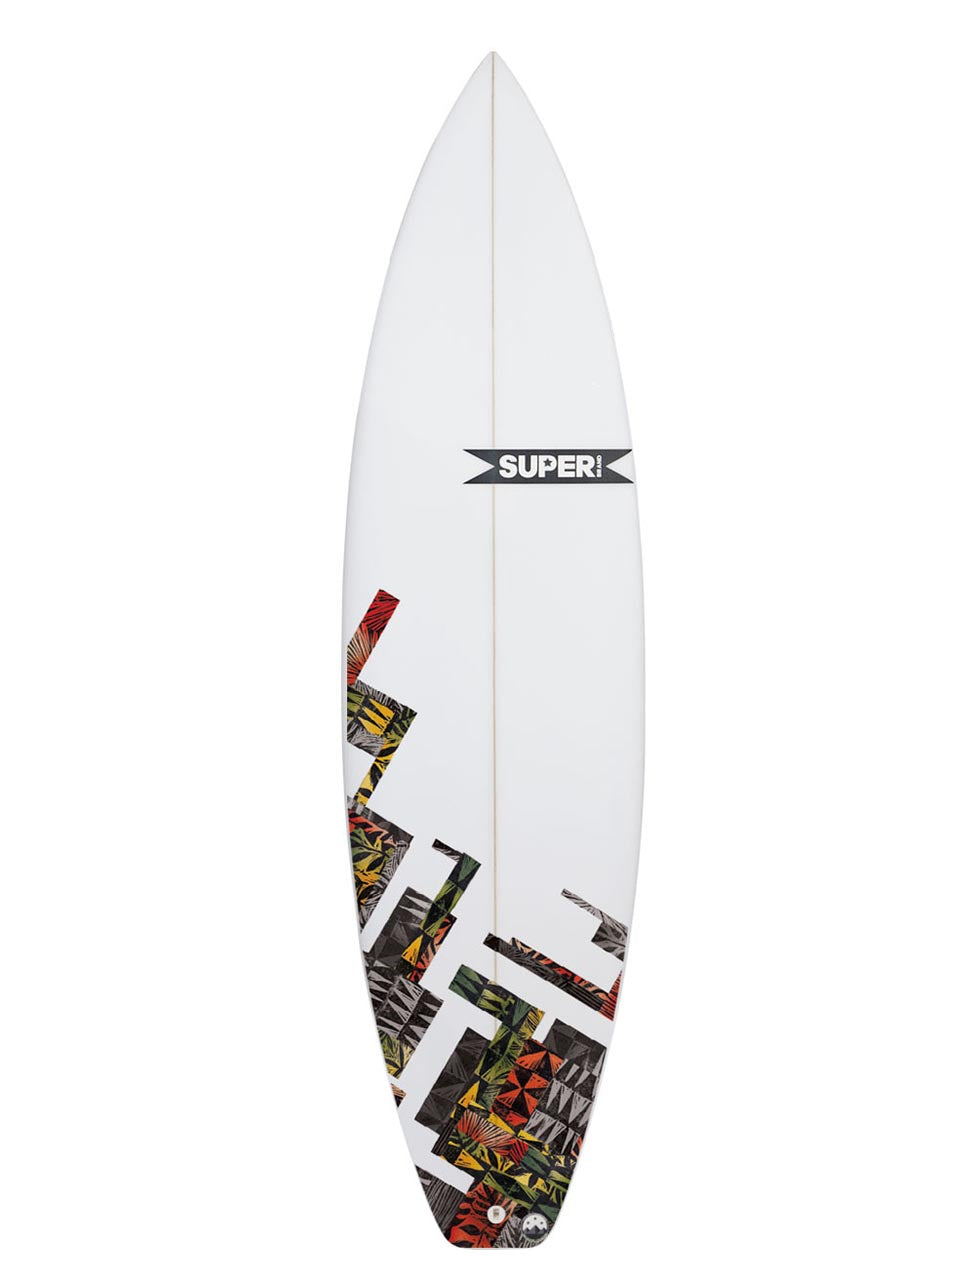 Clay Marzo Mad Cat Surfboard